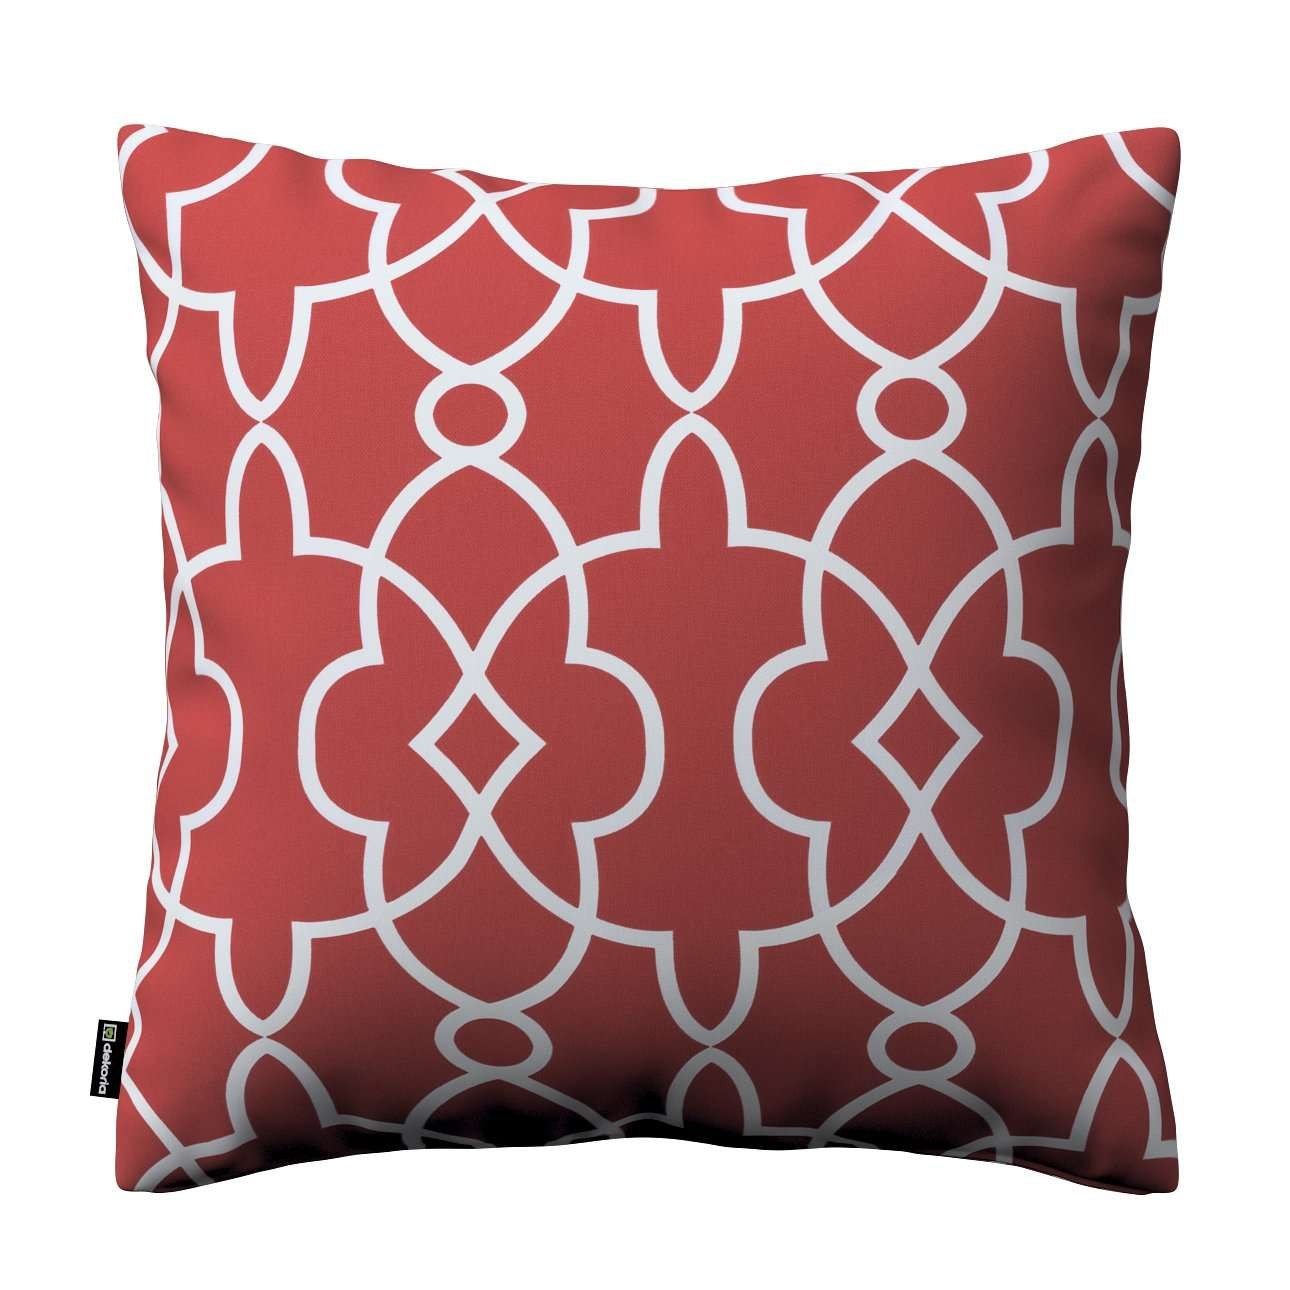 Kinga cushion cover in collection Gardenia, fabric: 142-21